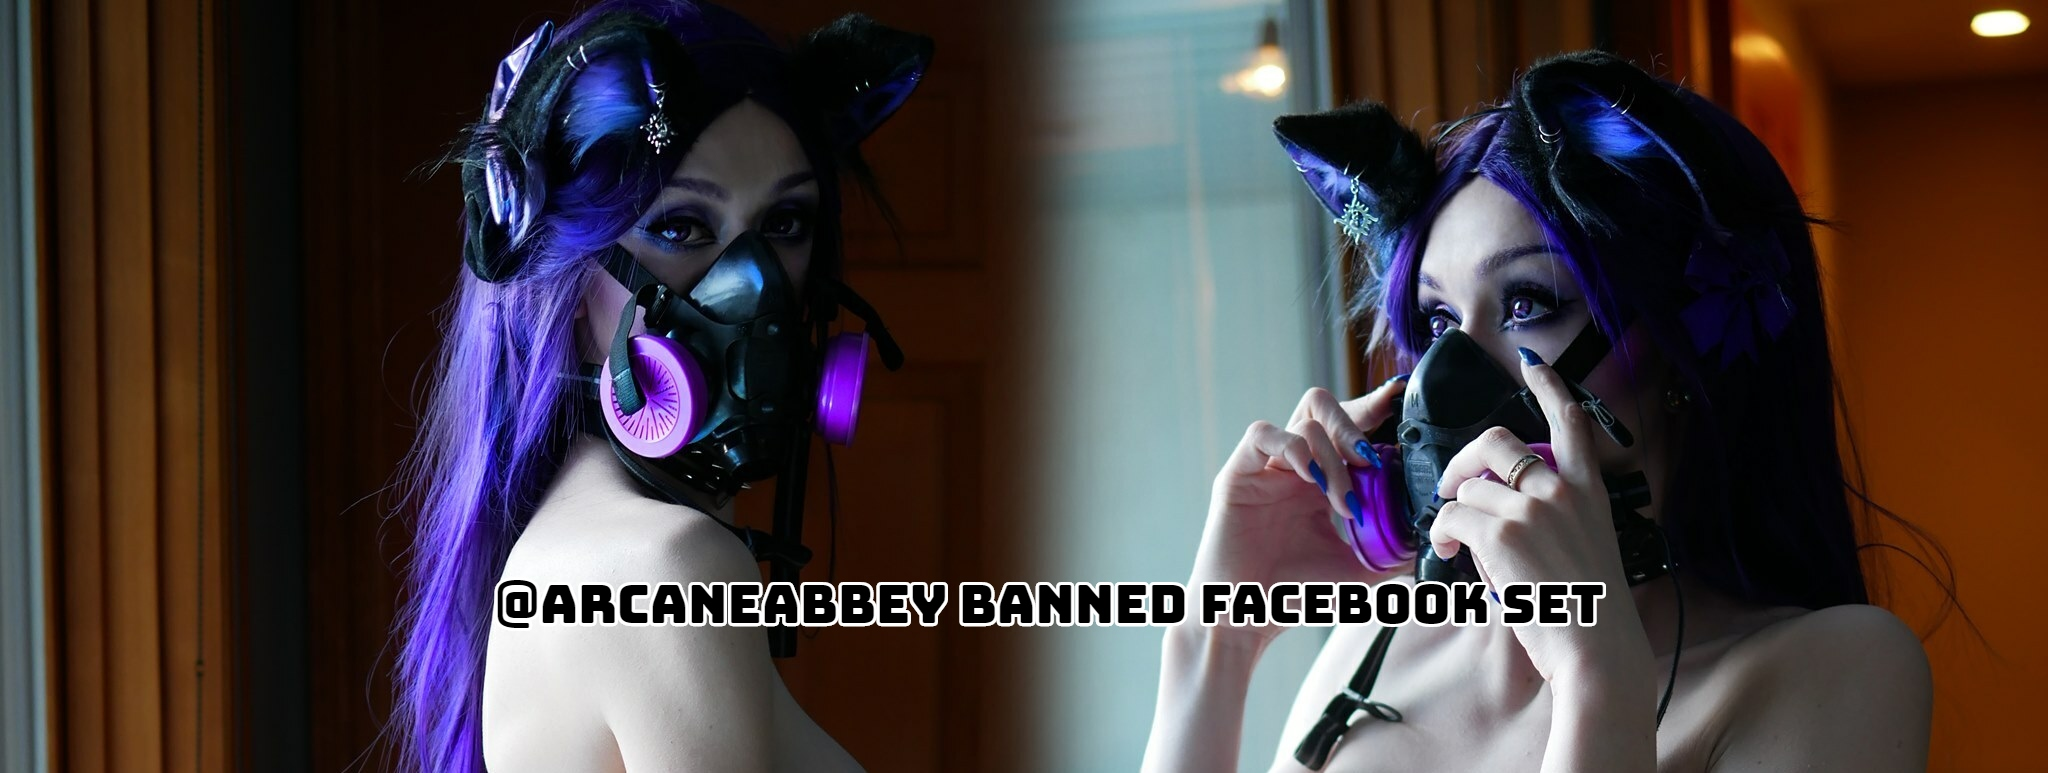 BANNED on Facebook! Drop Dead Sexy @ArcaneAbbey Set